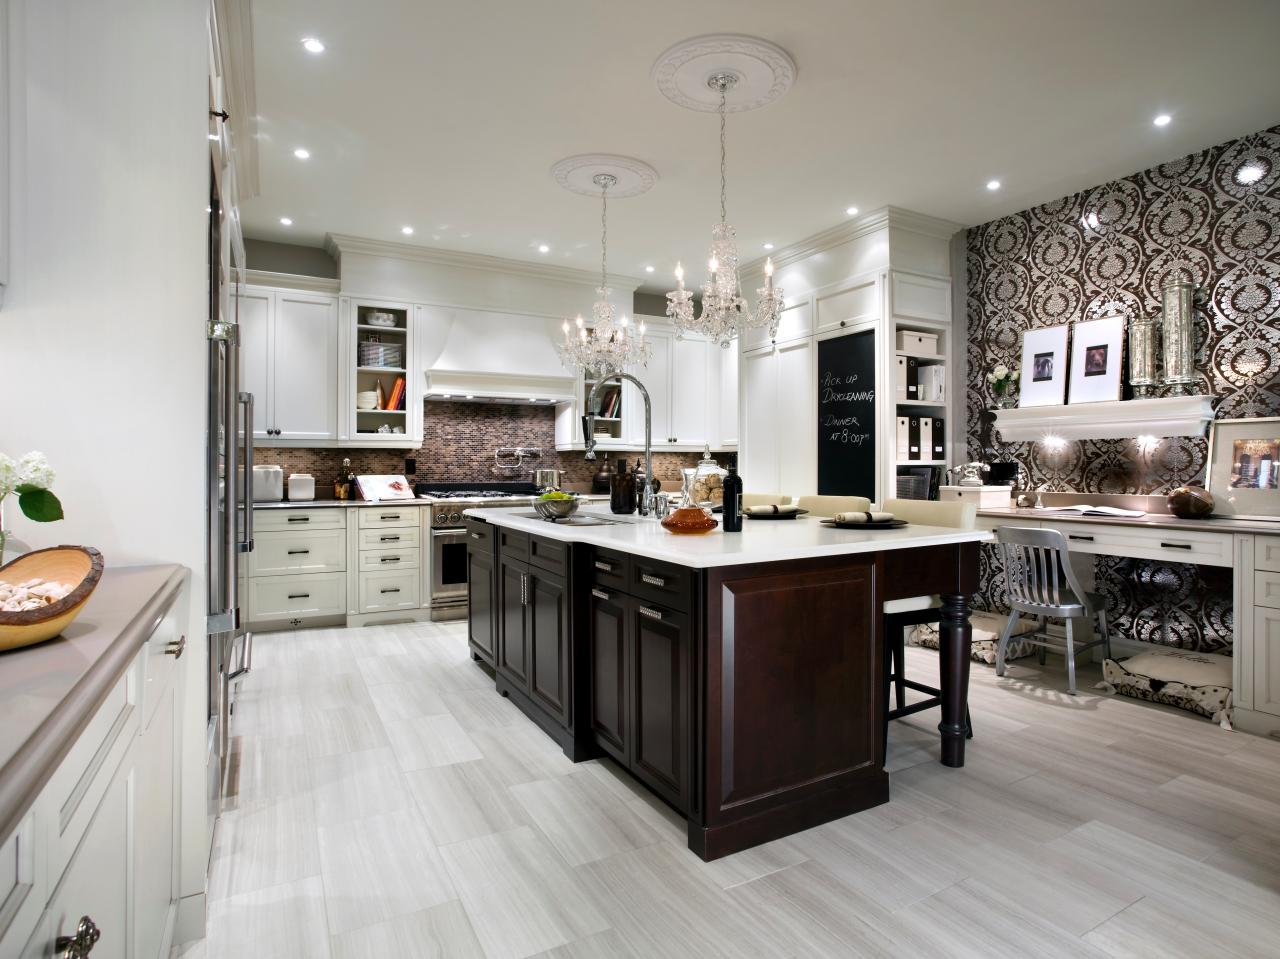 Candice olson kitchen colours | Hawk Haven on kitchen theme ideas with espresso cabinets, kitchen color ideas with stainless steel appliances, kitchen makeovers with espresso cabinets, kitchen color ideas with granite, kitchen paint with espresso cabinets, kitchen color schemes with espresso cabinets,